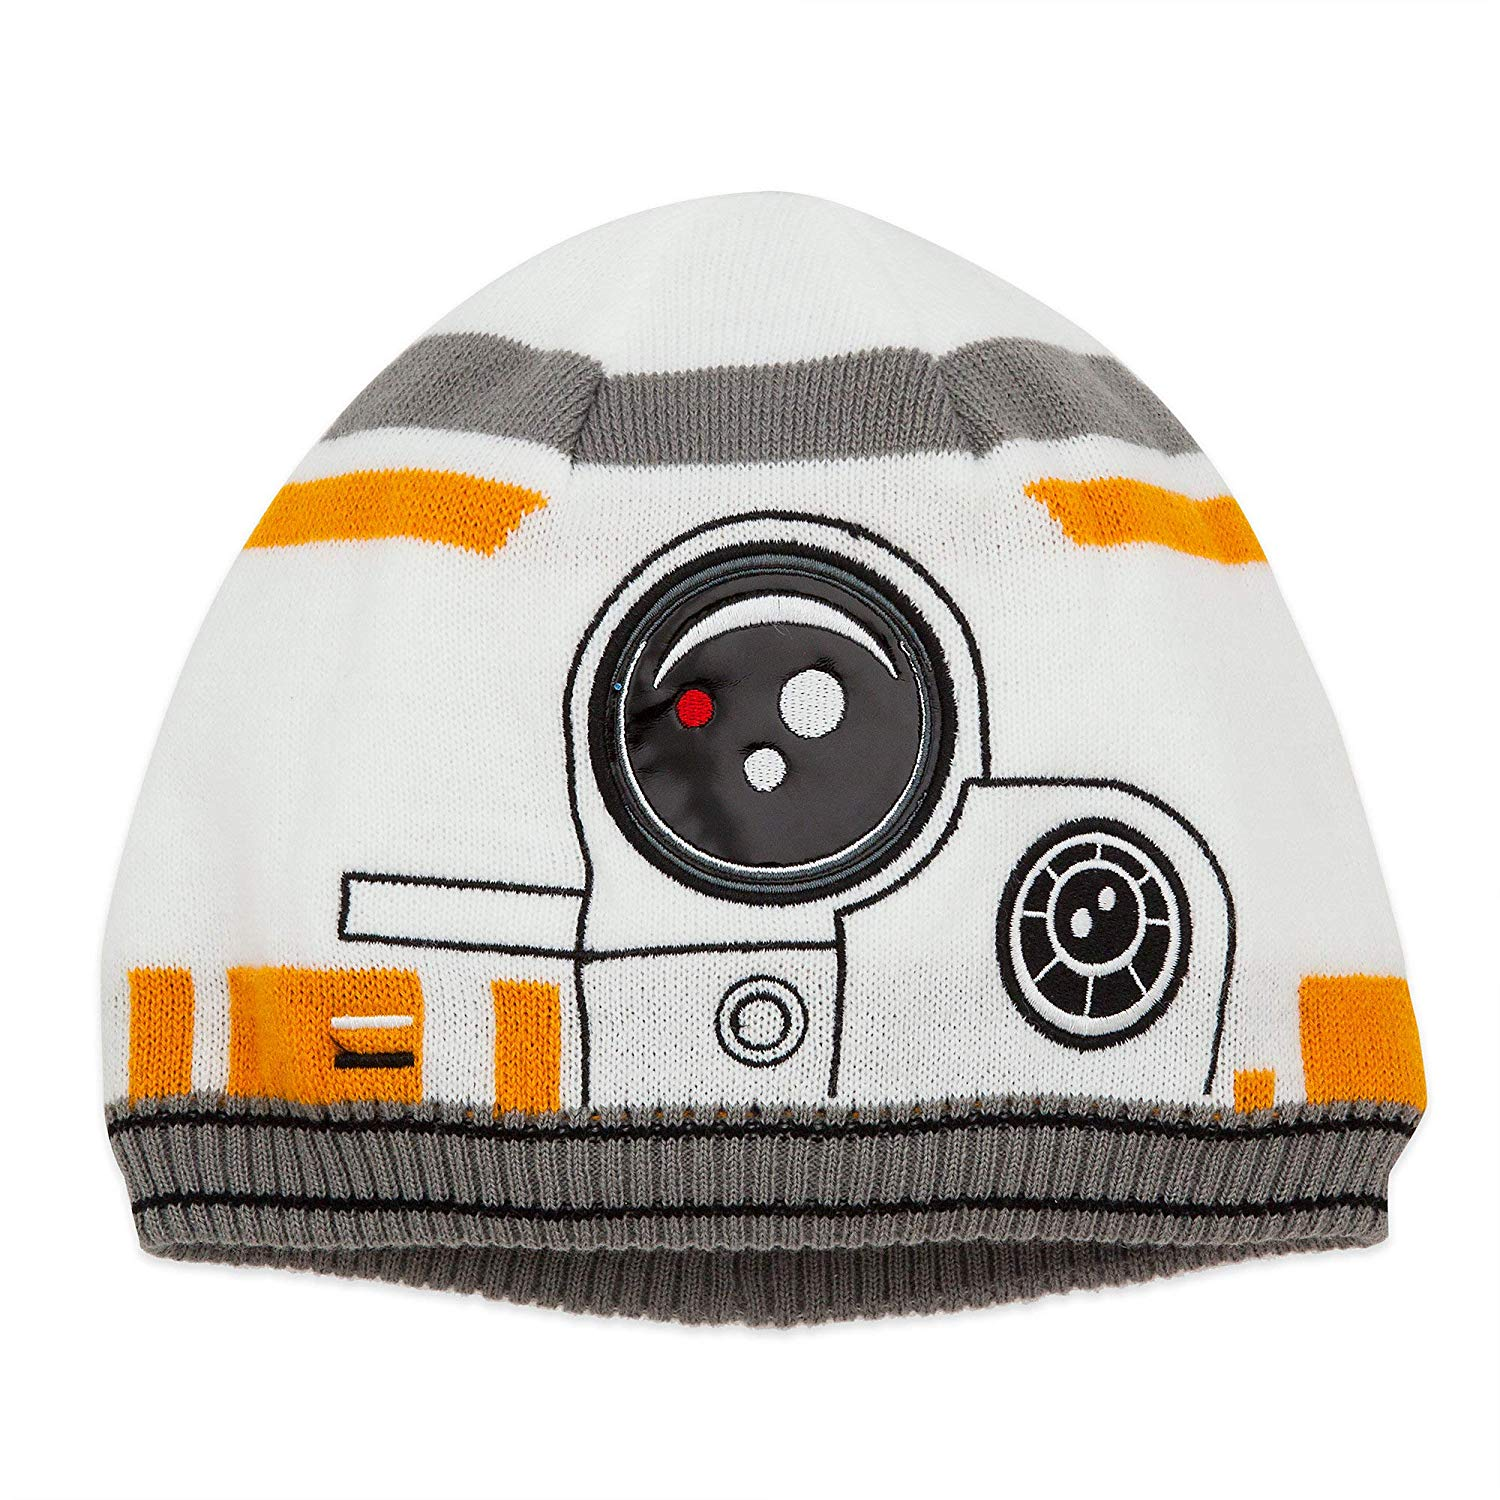 Star Wars BB-8 Reversible Beanie Hat for Kids- best gifts for kids